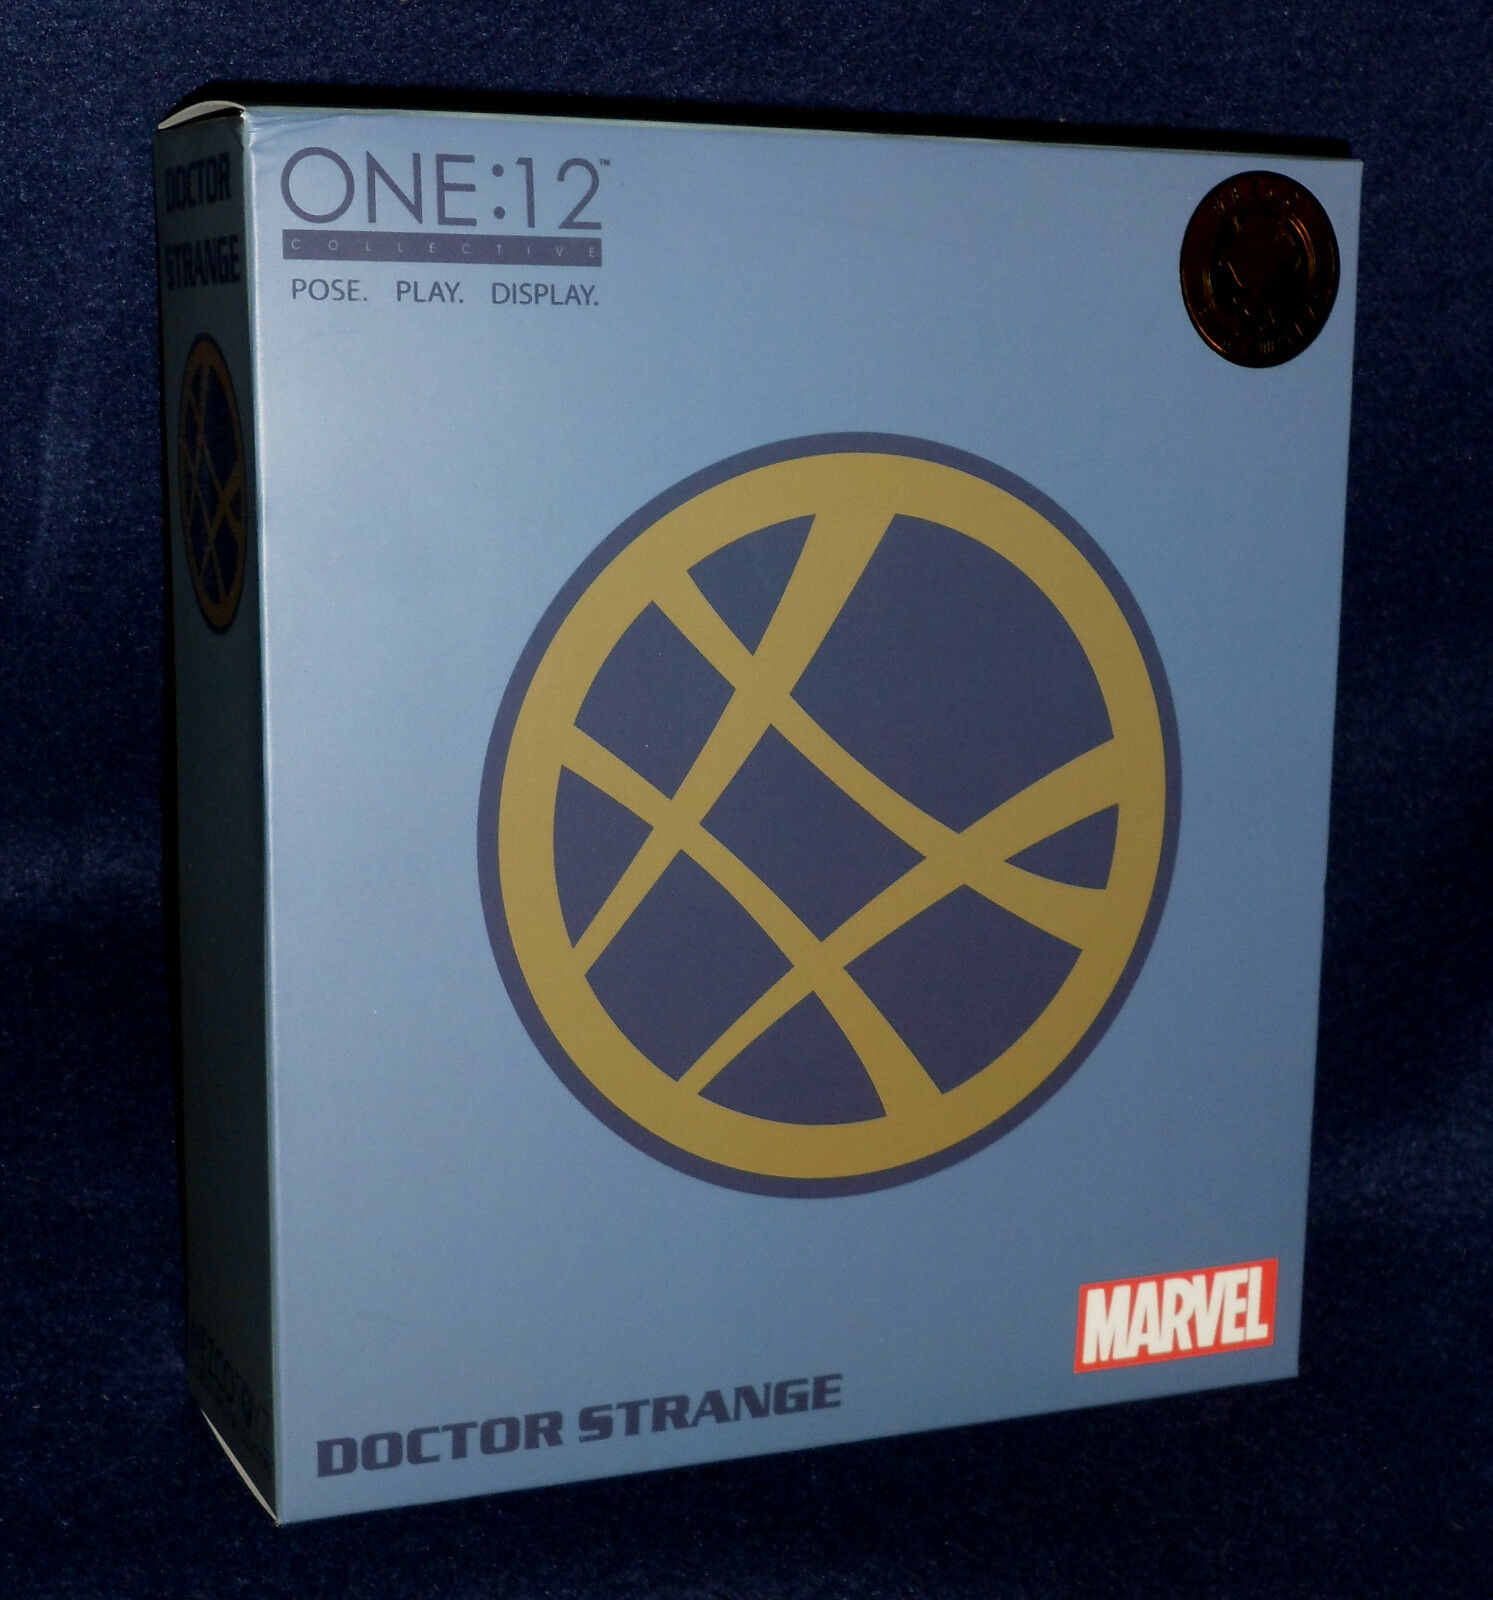 One   12 Collective DR. DOCTOR STRANGE FIRST APPEARANCE cifra Mezco Exclusive  Sito ufficiale